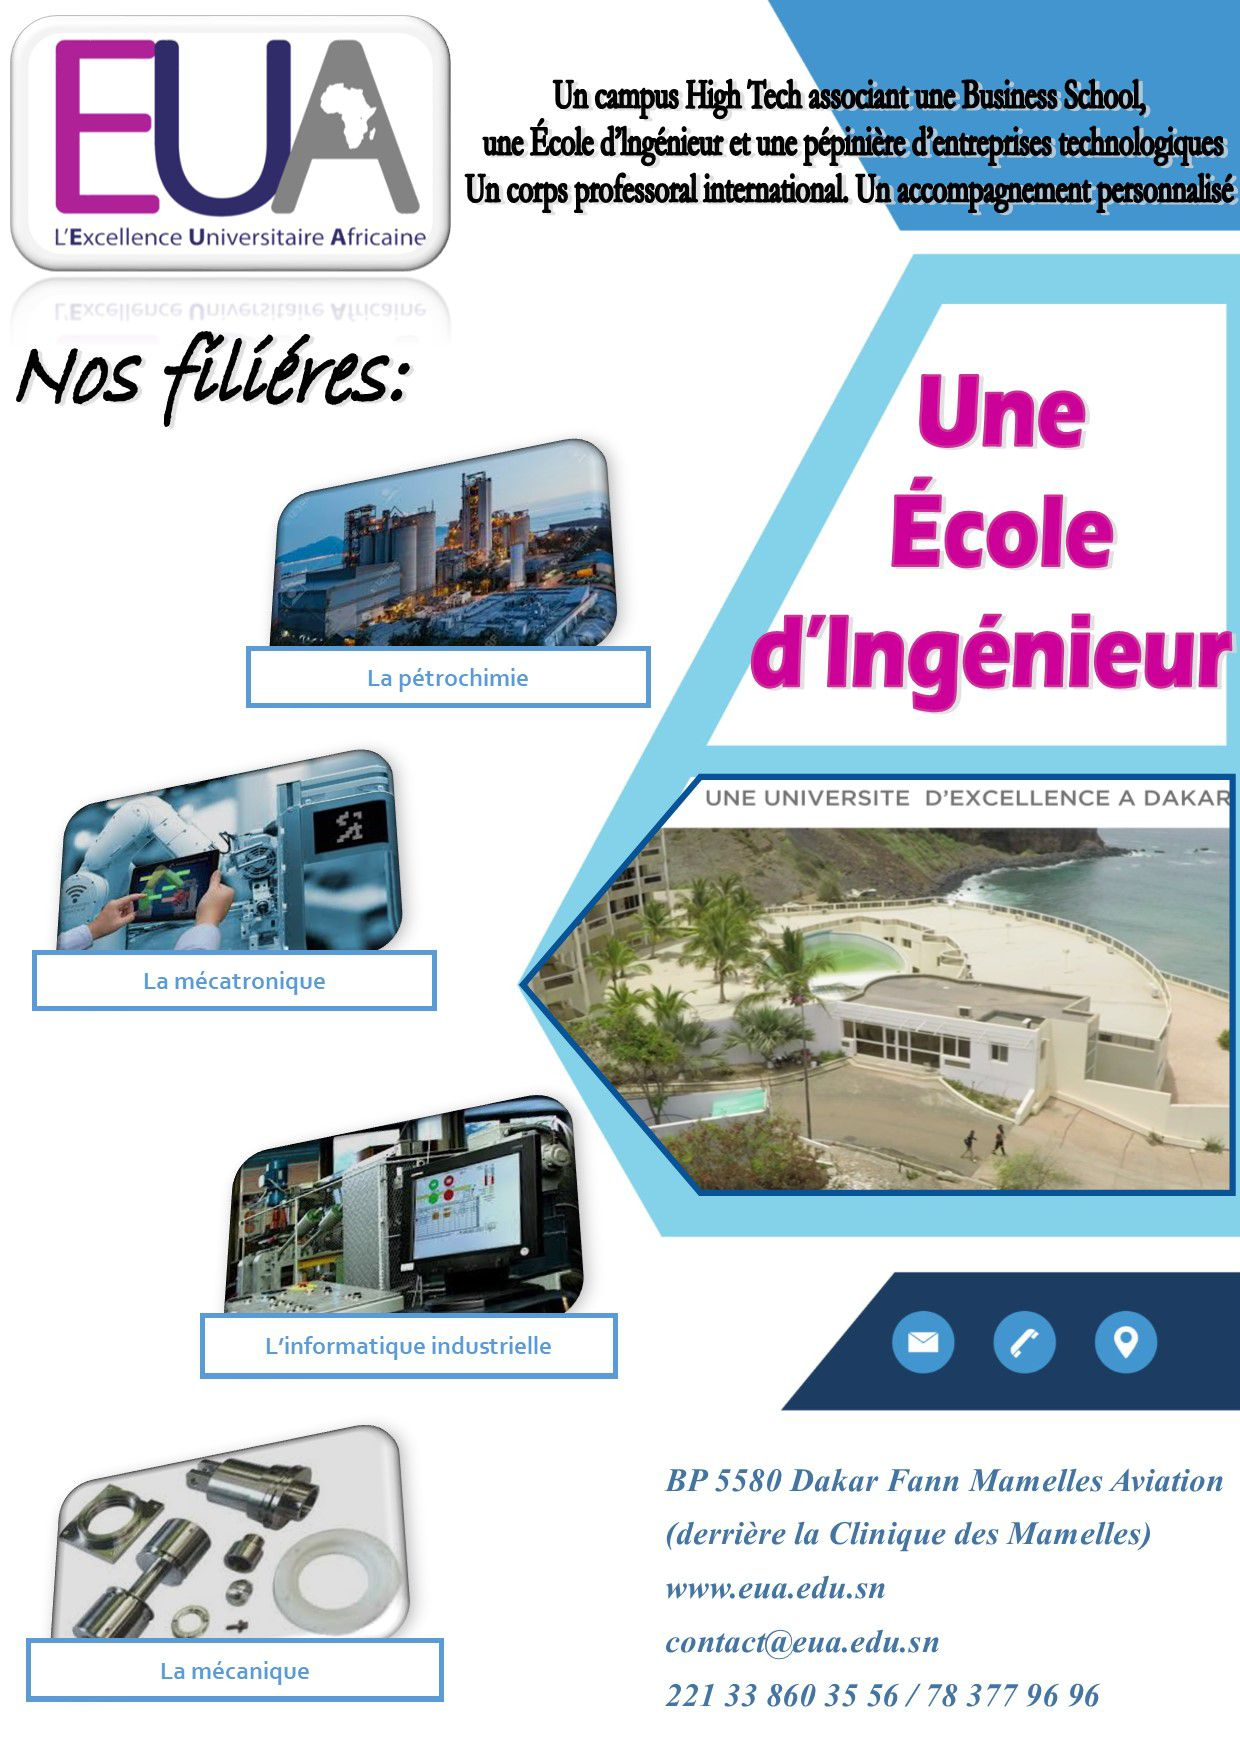 Ergo CMS - une grande photo